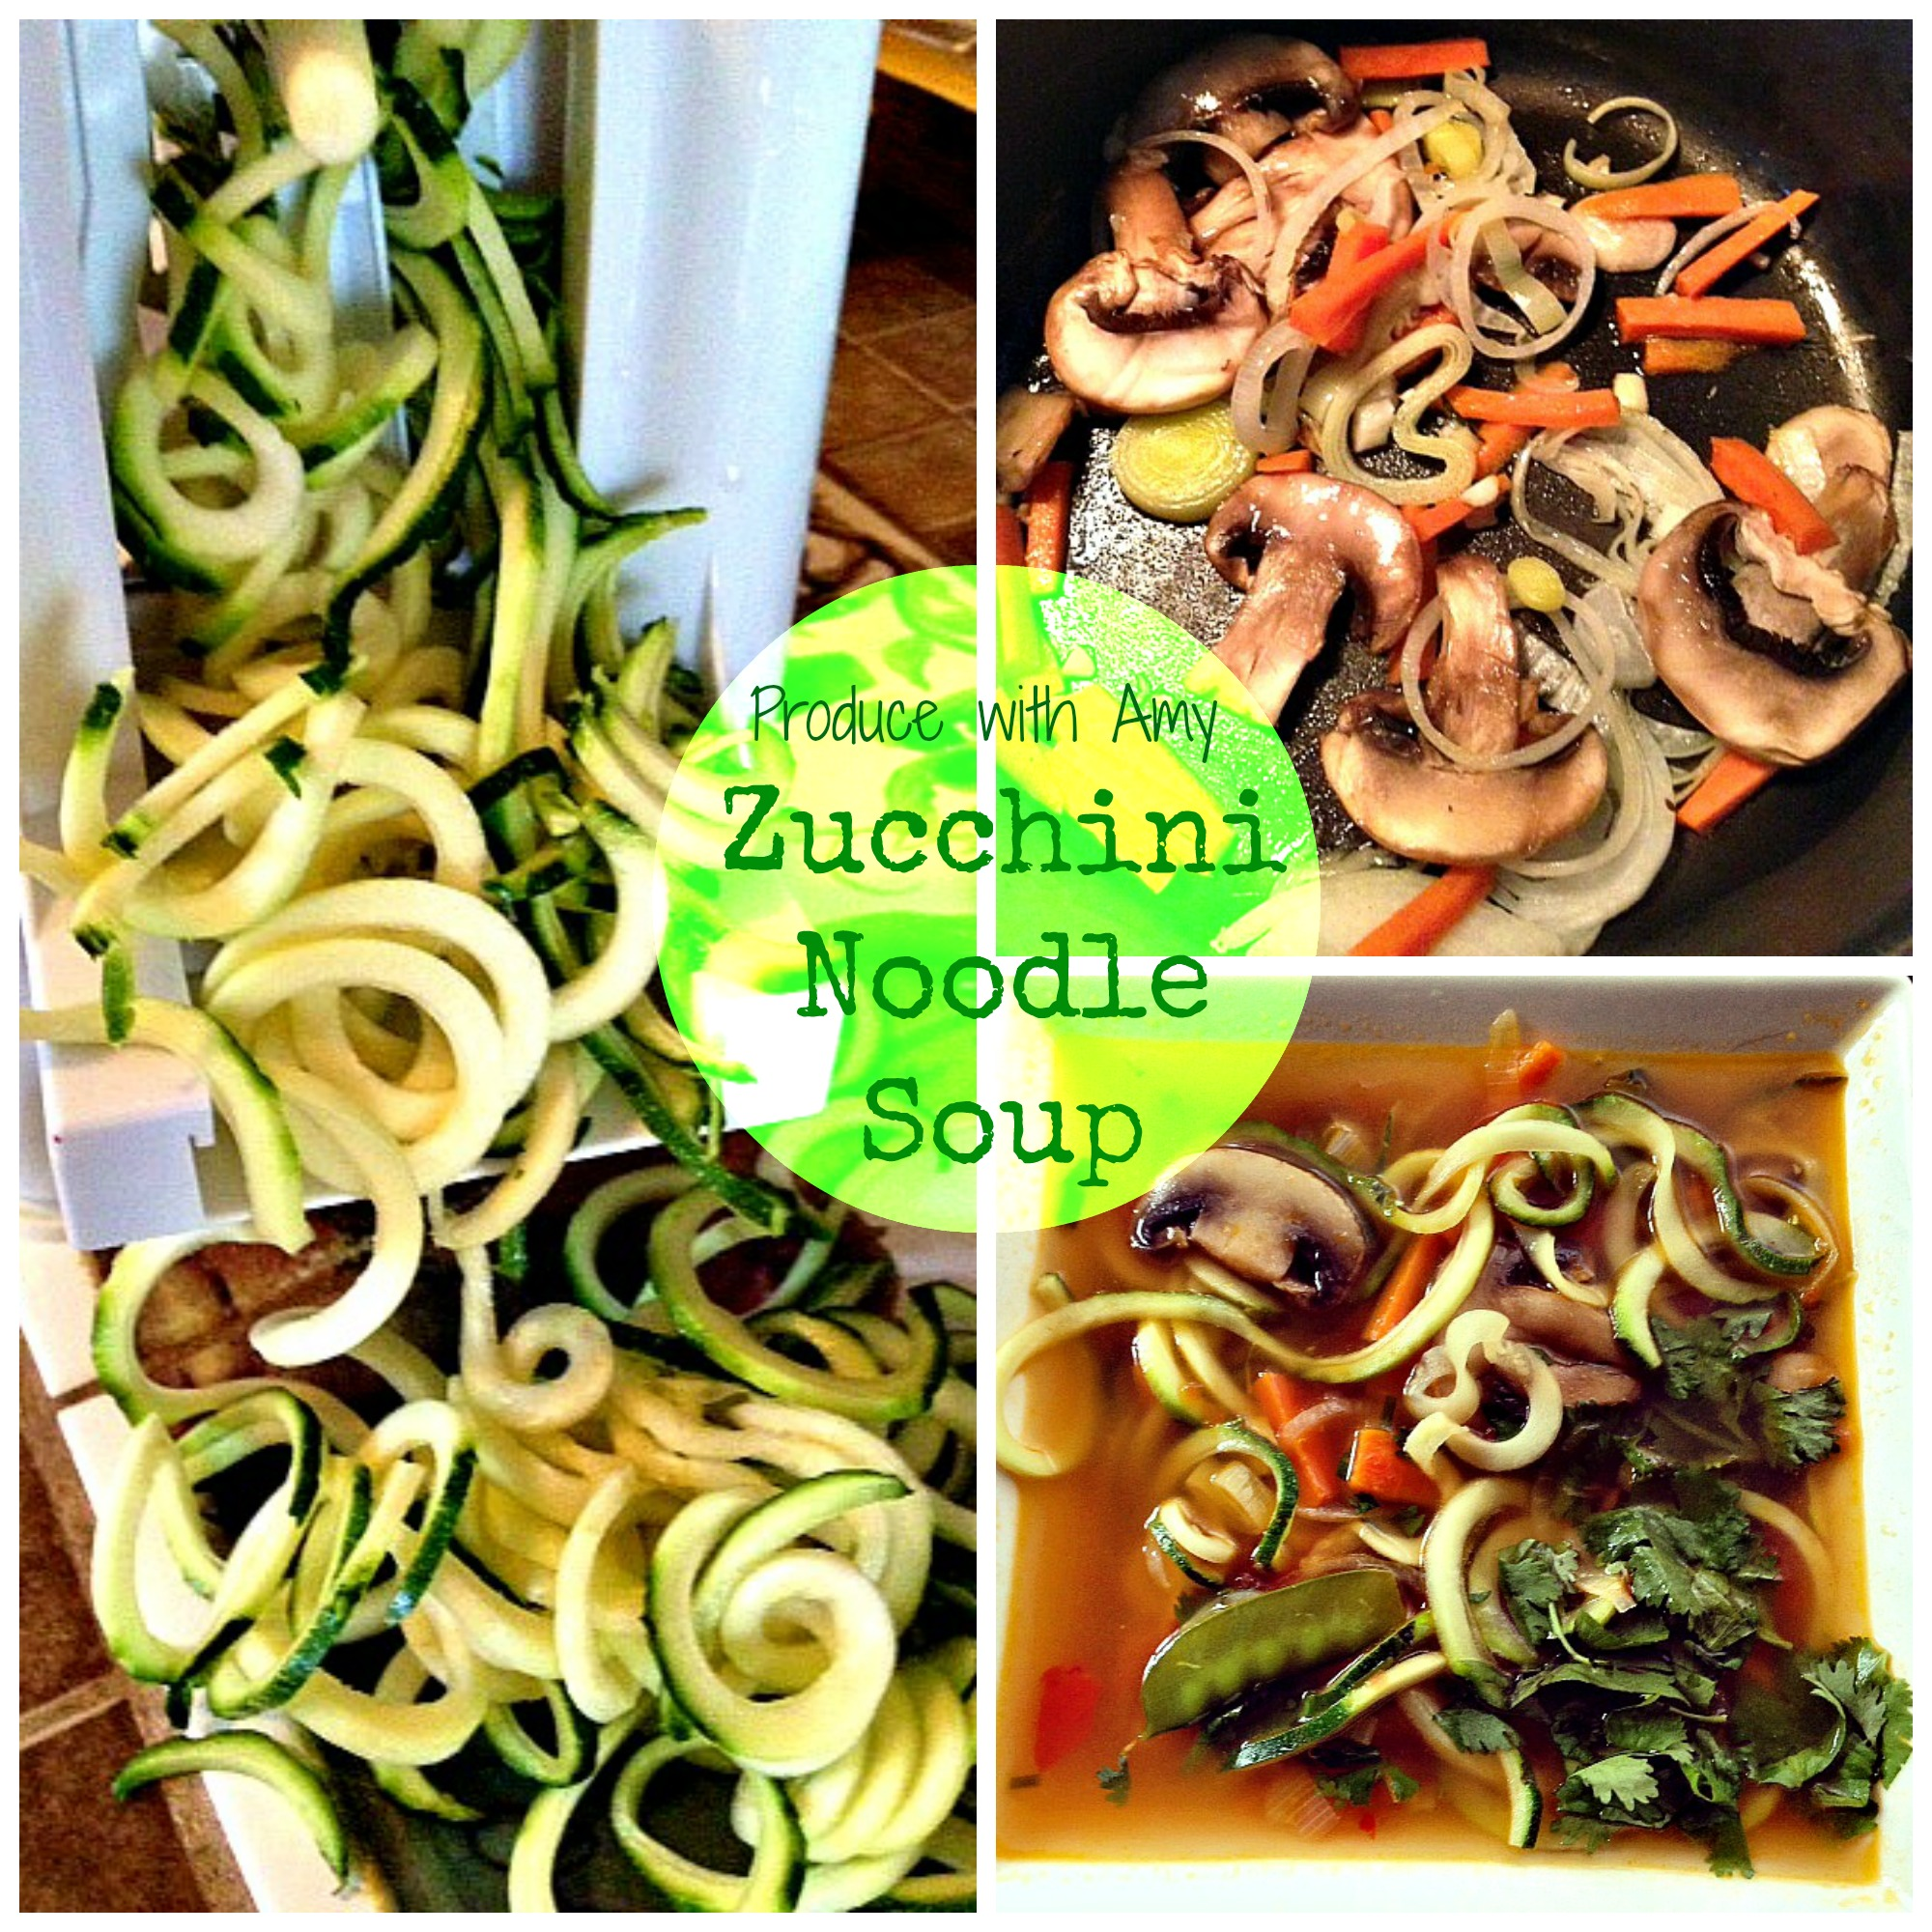 Zucchini Noodle Soup by Produce with Amy